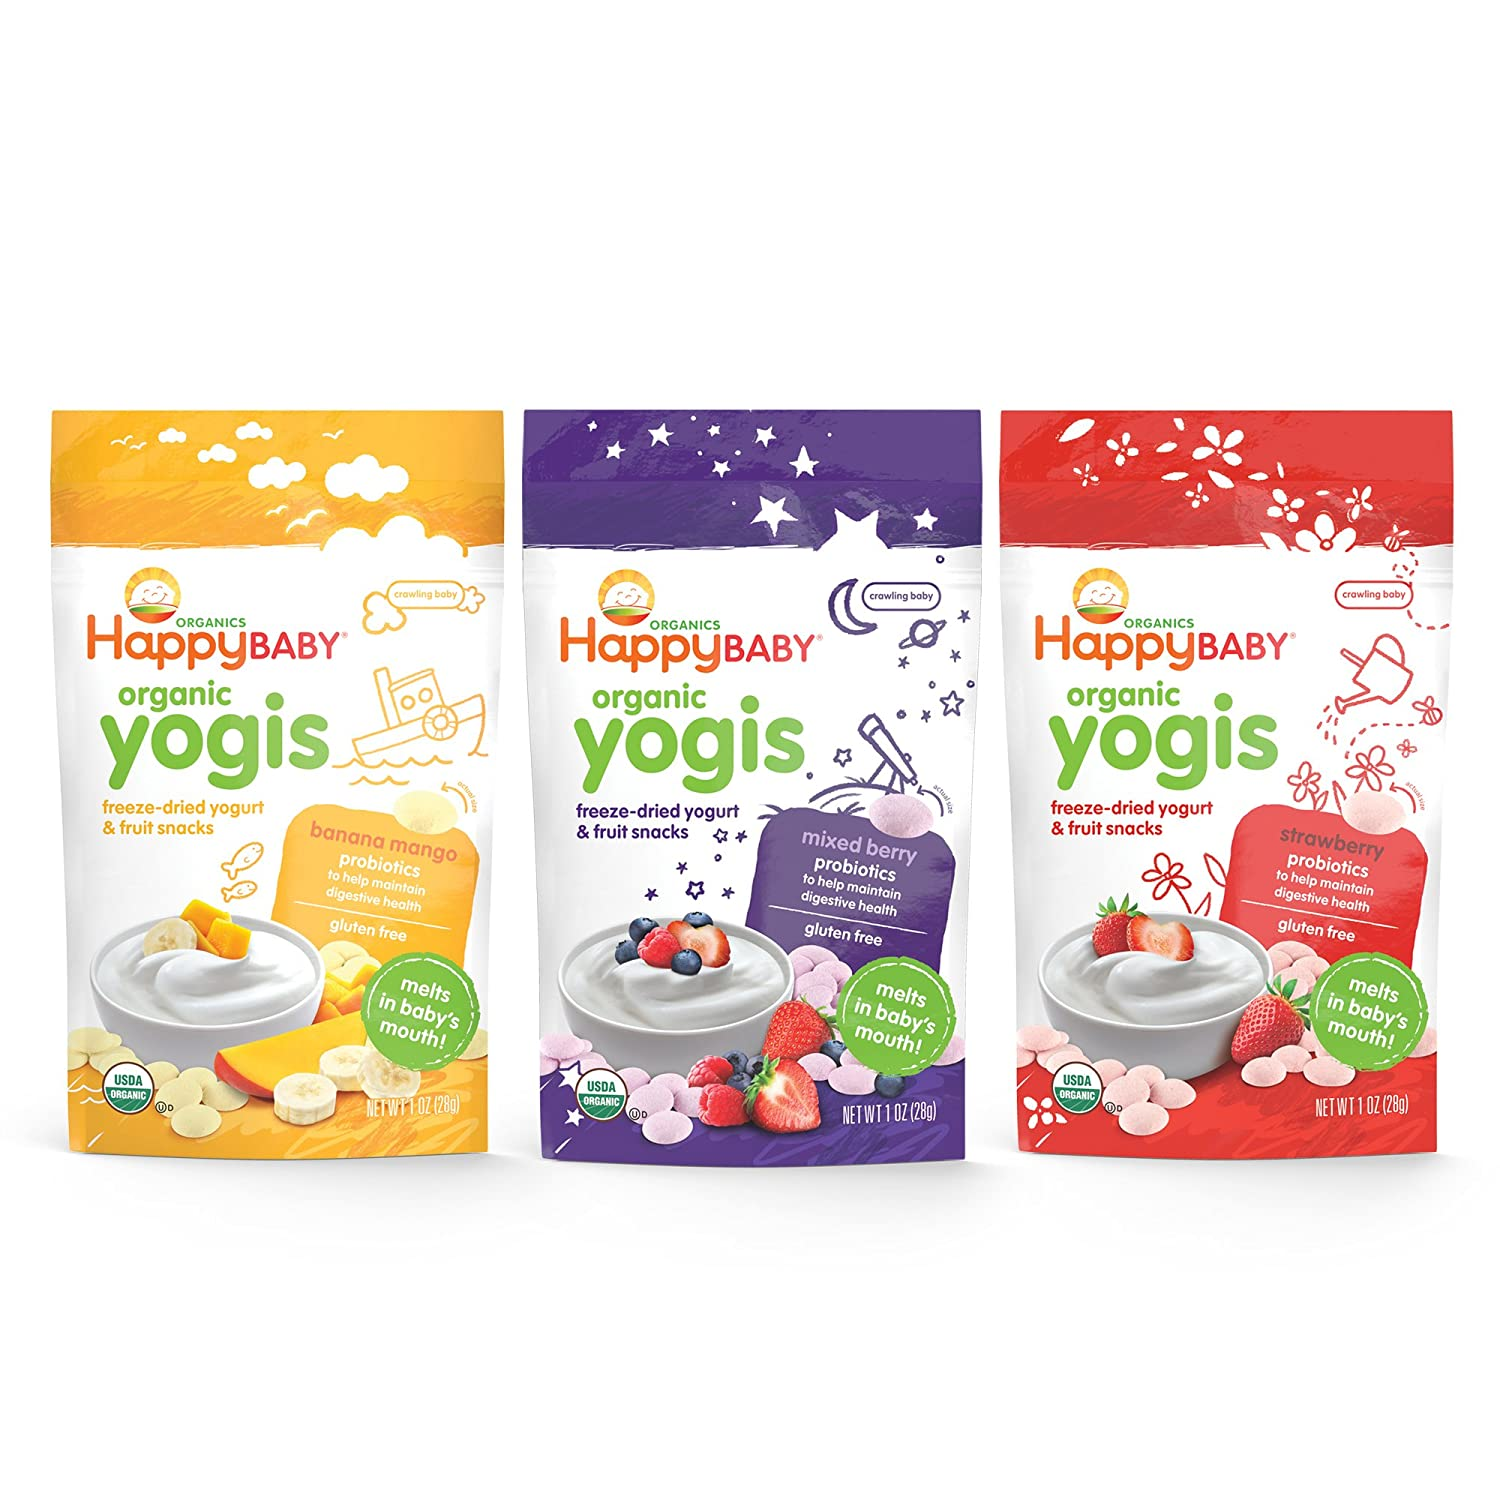 Happy Baby Organic Yogis Freeze-Dried Yogurt & Fruit Snacks 3 Flavor Variety Pack, 1 Ounce Bag (Pack of 6) Banana Mango, Mixed Berry, Strawberry, Easy to Chew Probiotic Snacks for Babies & Toddlers Nurture Inc. 01382